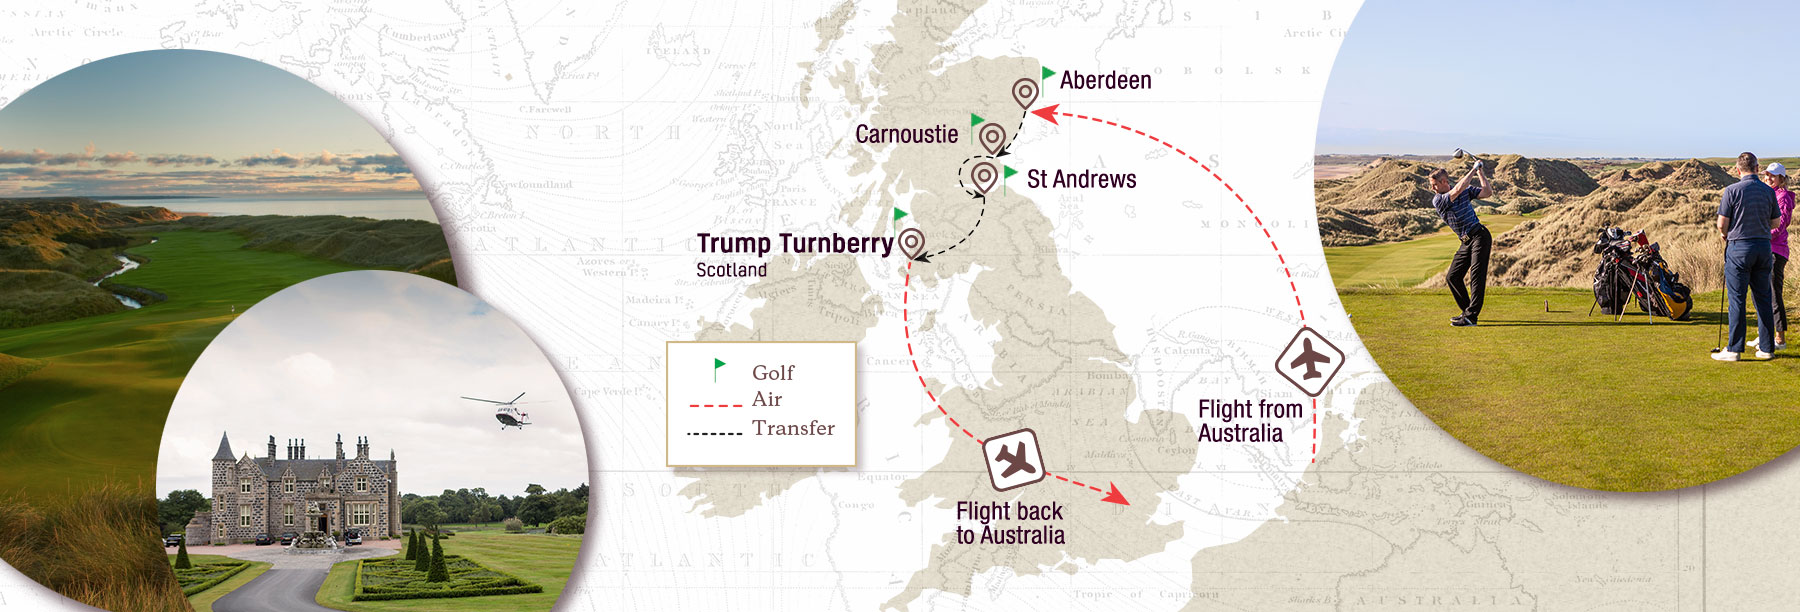 Exclusive Scottish Links Golf Tour Map